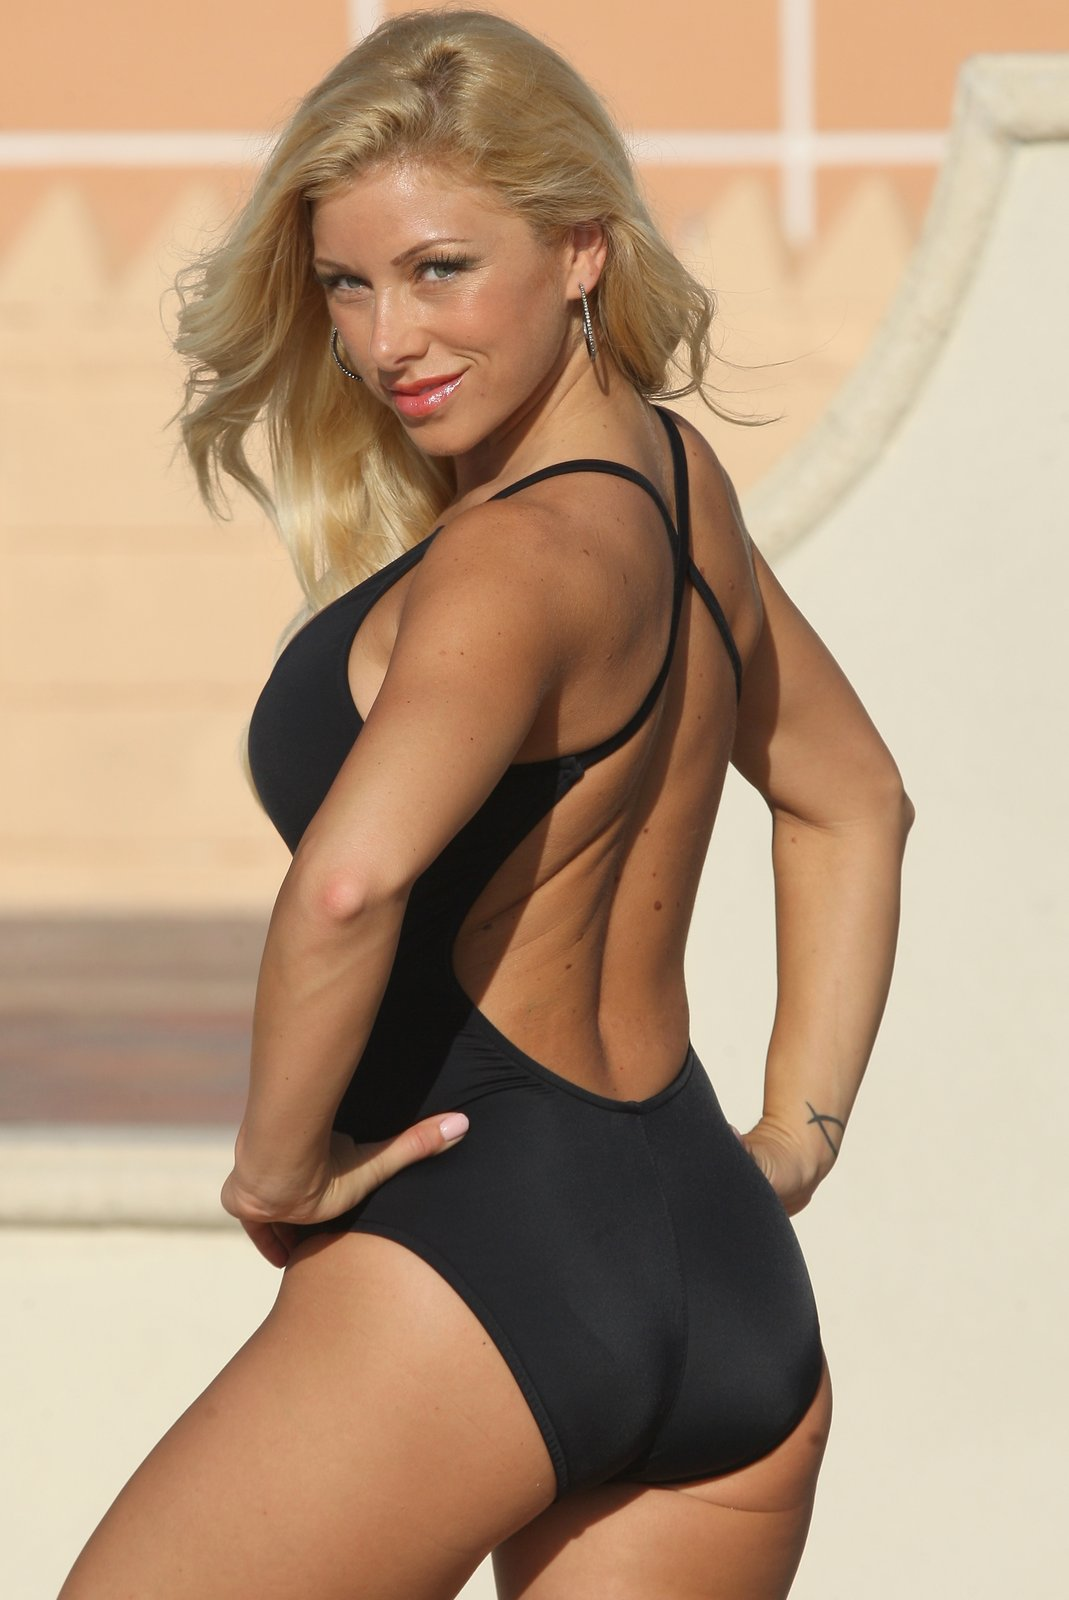 2ced1ea1ee06 Download (1200x1200); UjENA Champagne Dip Black Strappy One Piece. FREE  Shipping with code 1300. Download (1069x1600); Ujena Sailor Girl One Piece